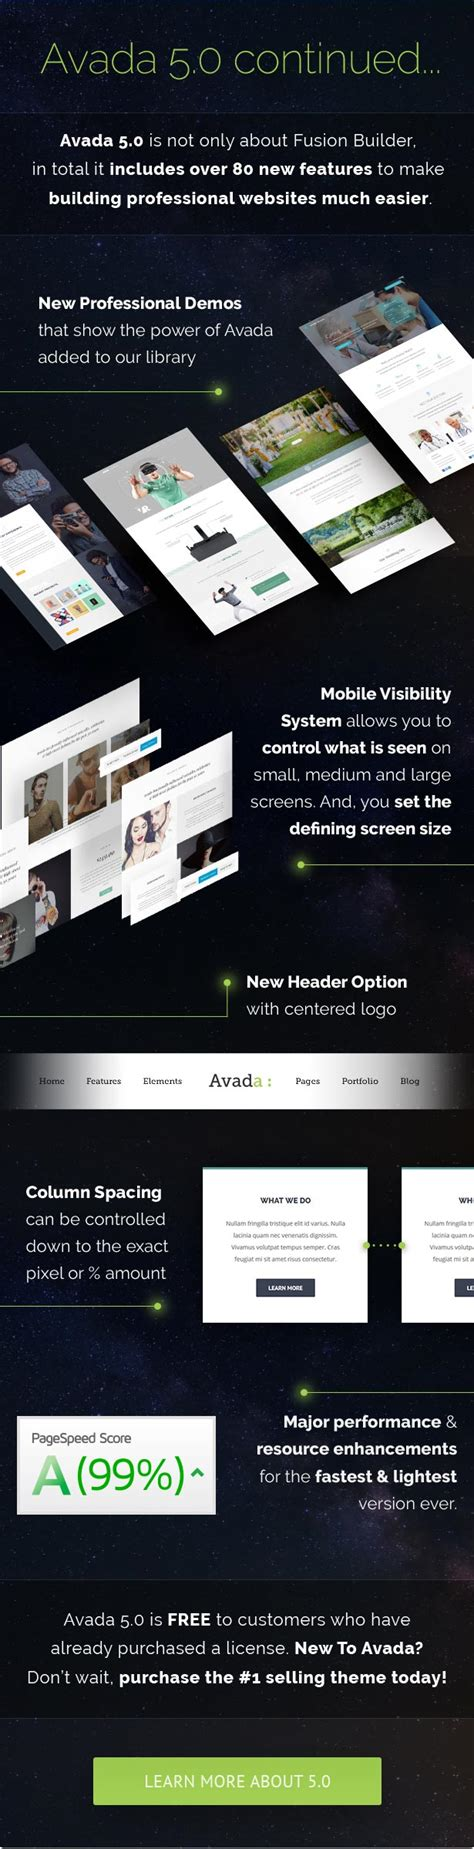 Avada Theme New Update | avada responsive multi purpose theme by themefusion